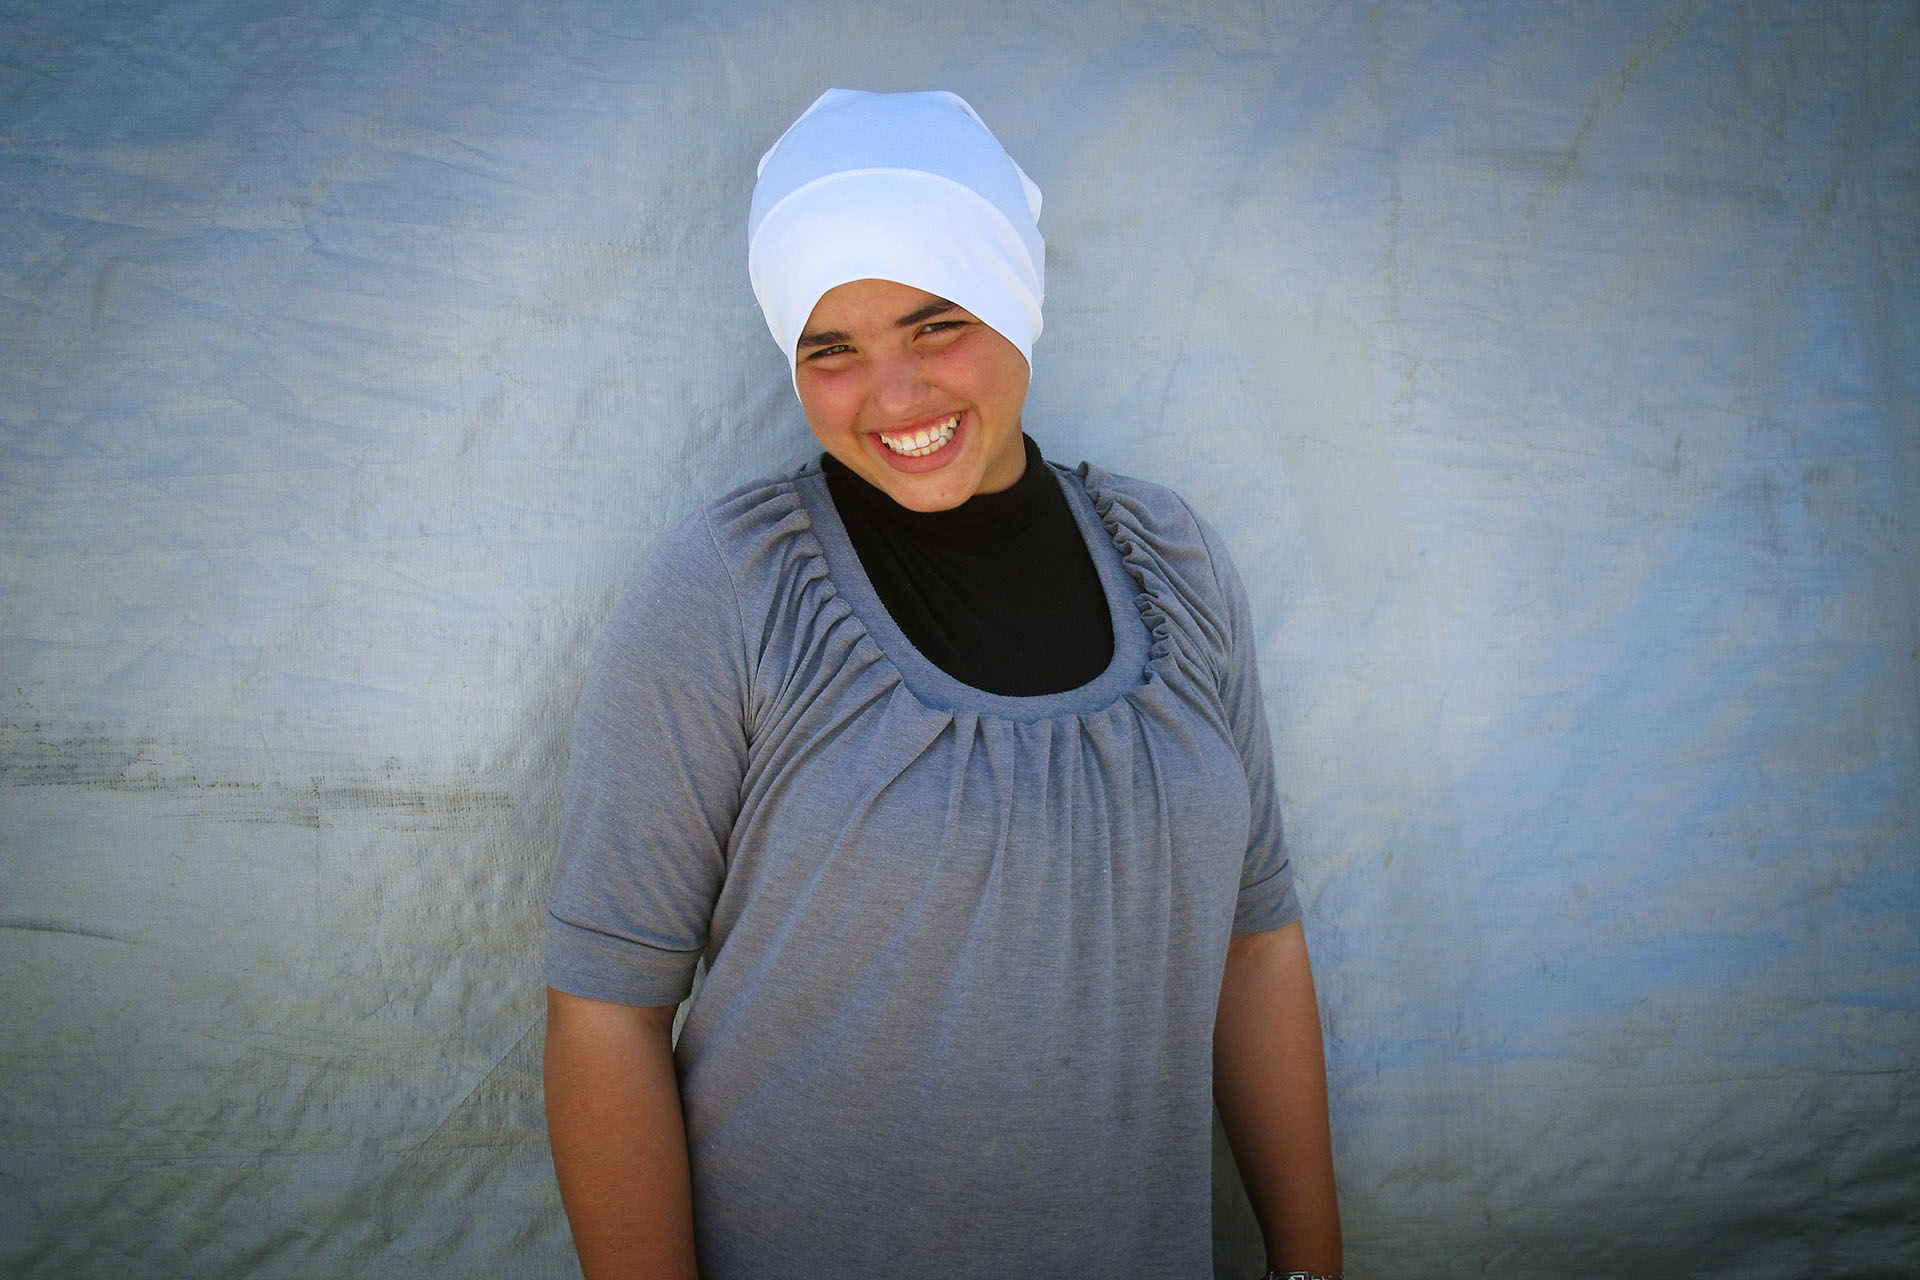 Hala poses for a photo outside her home. Al Araqib July 2010